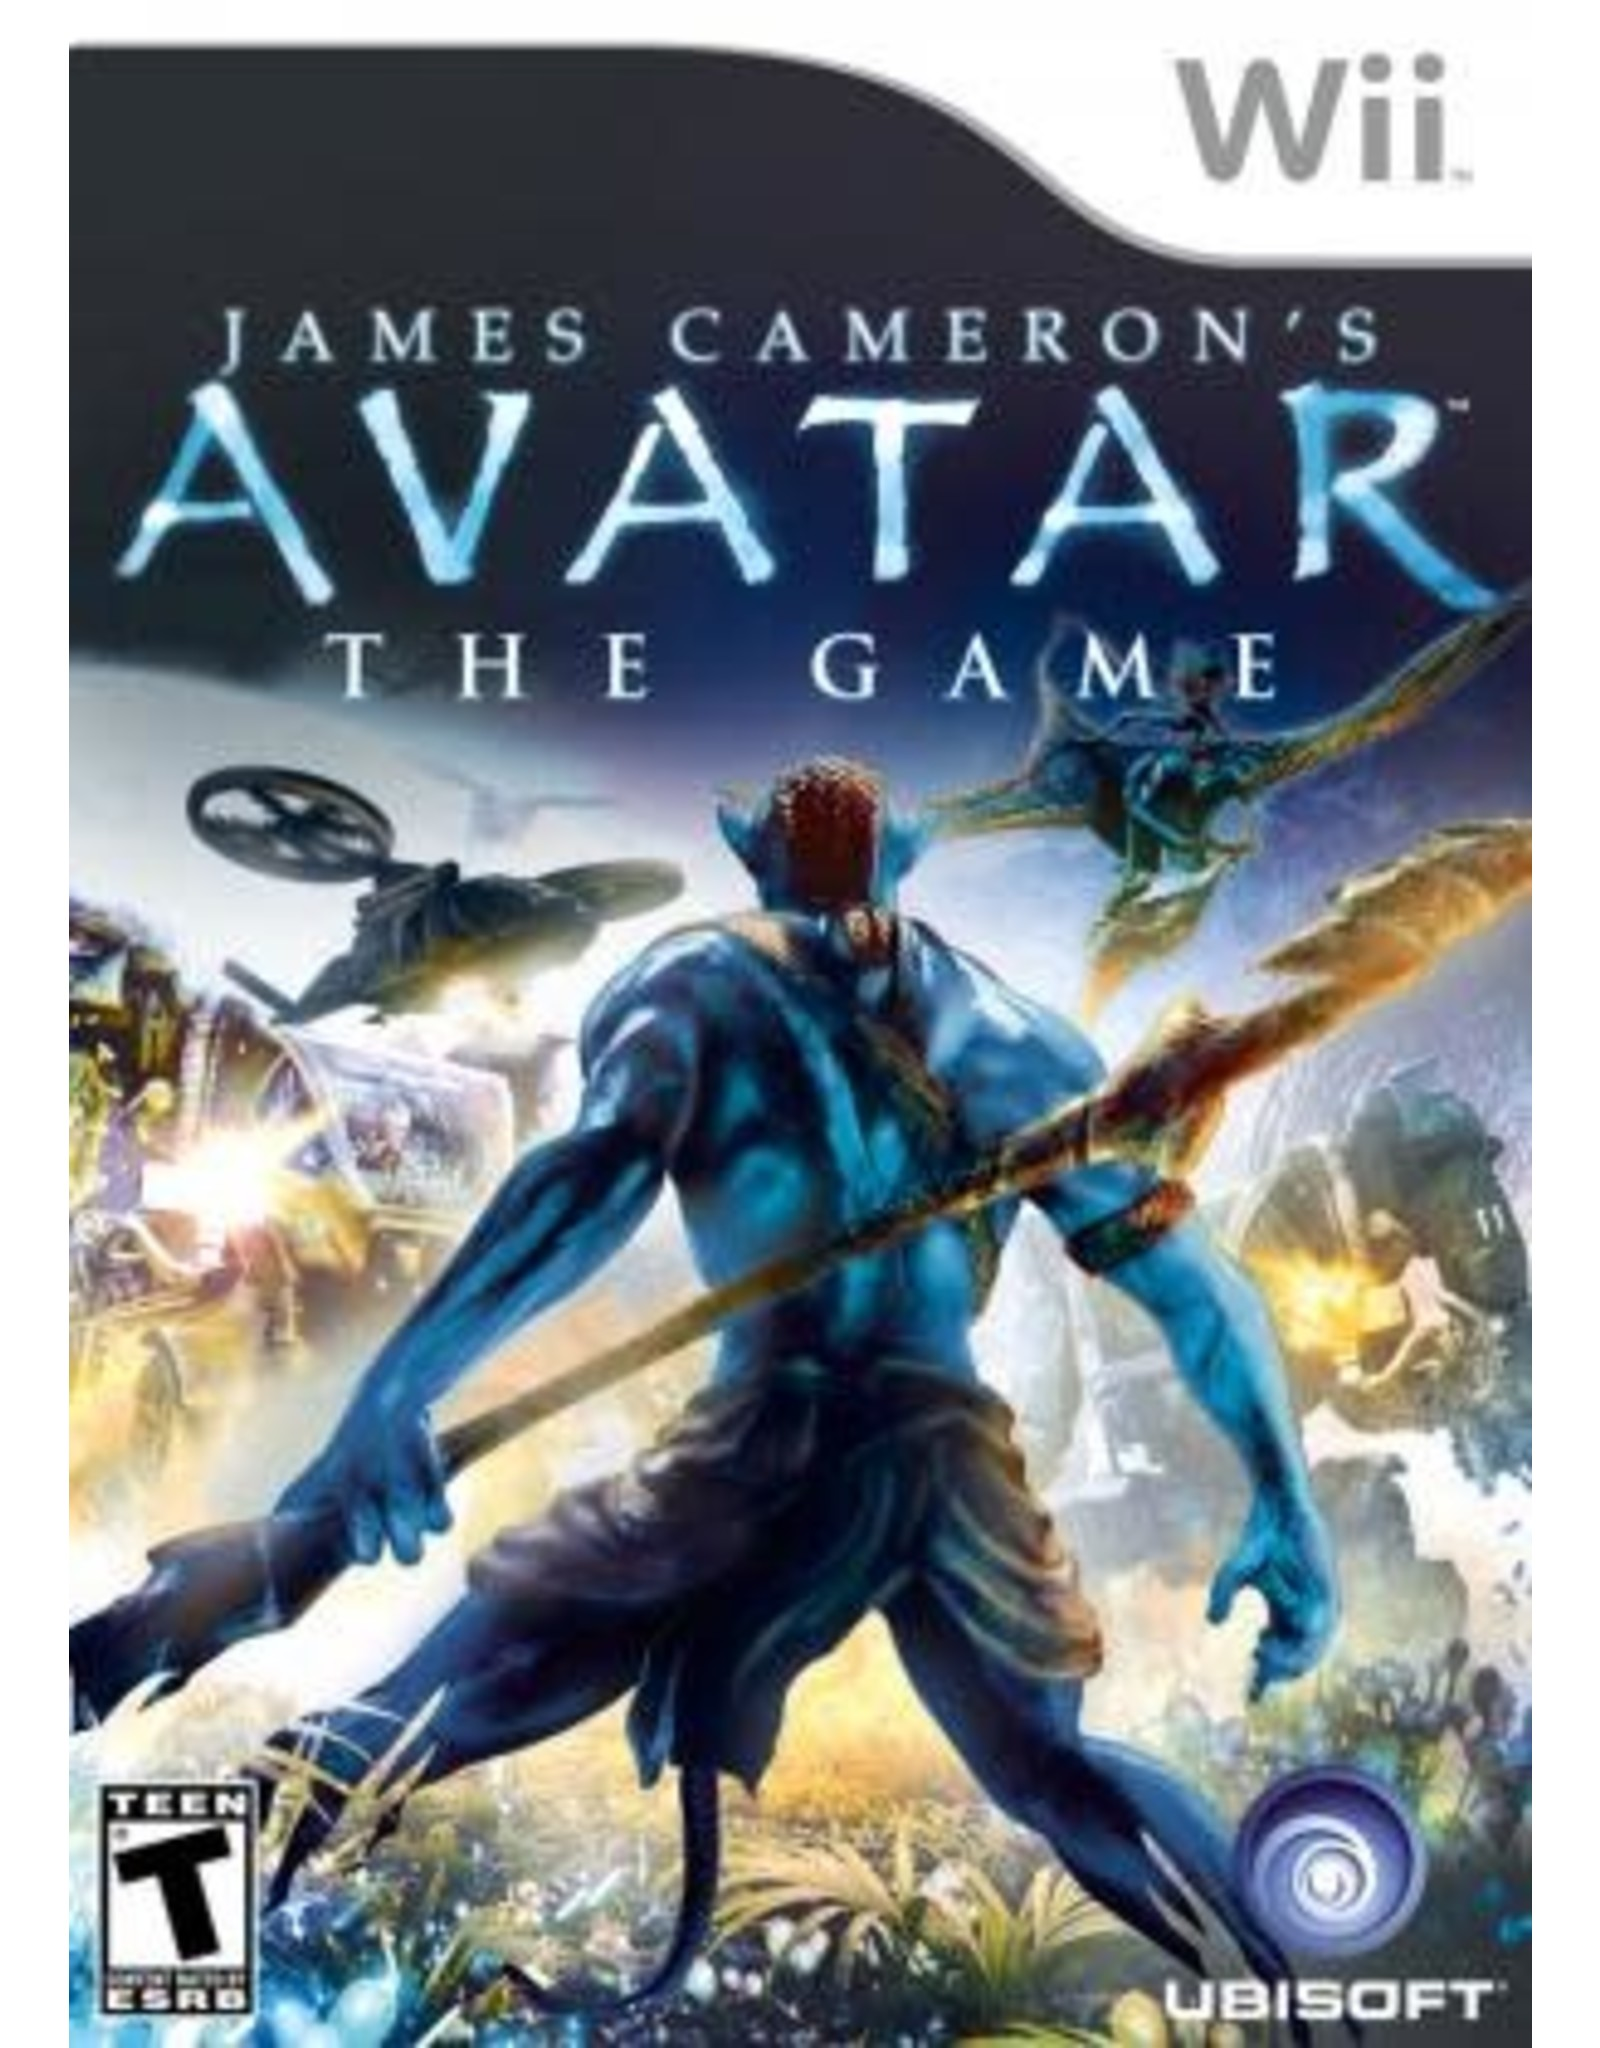 Wii Avatar: The Game (CiB)